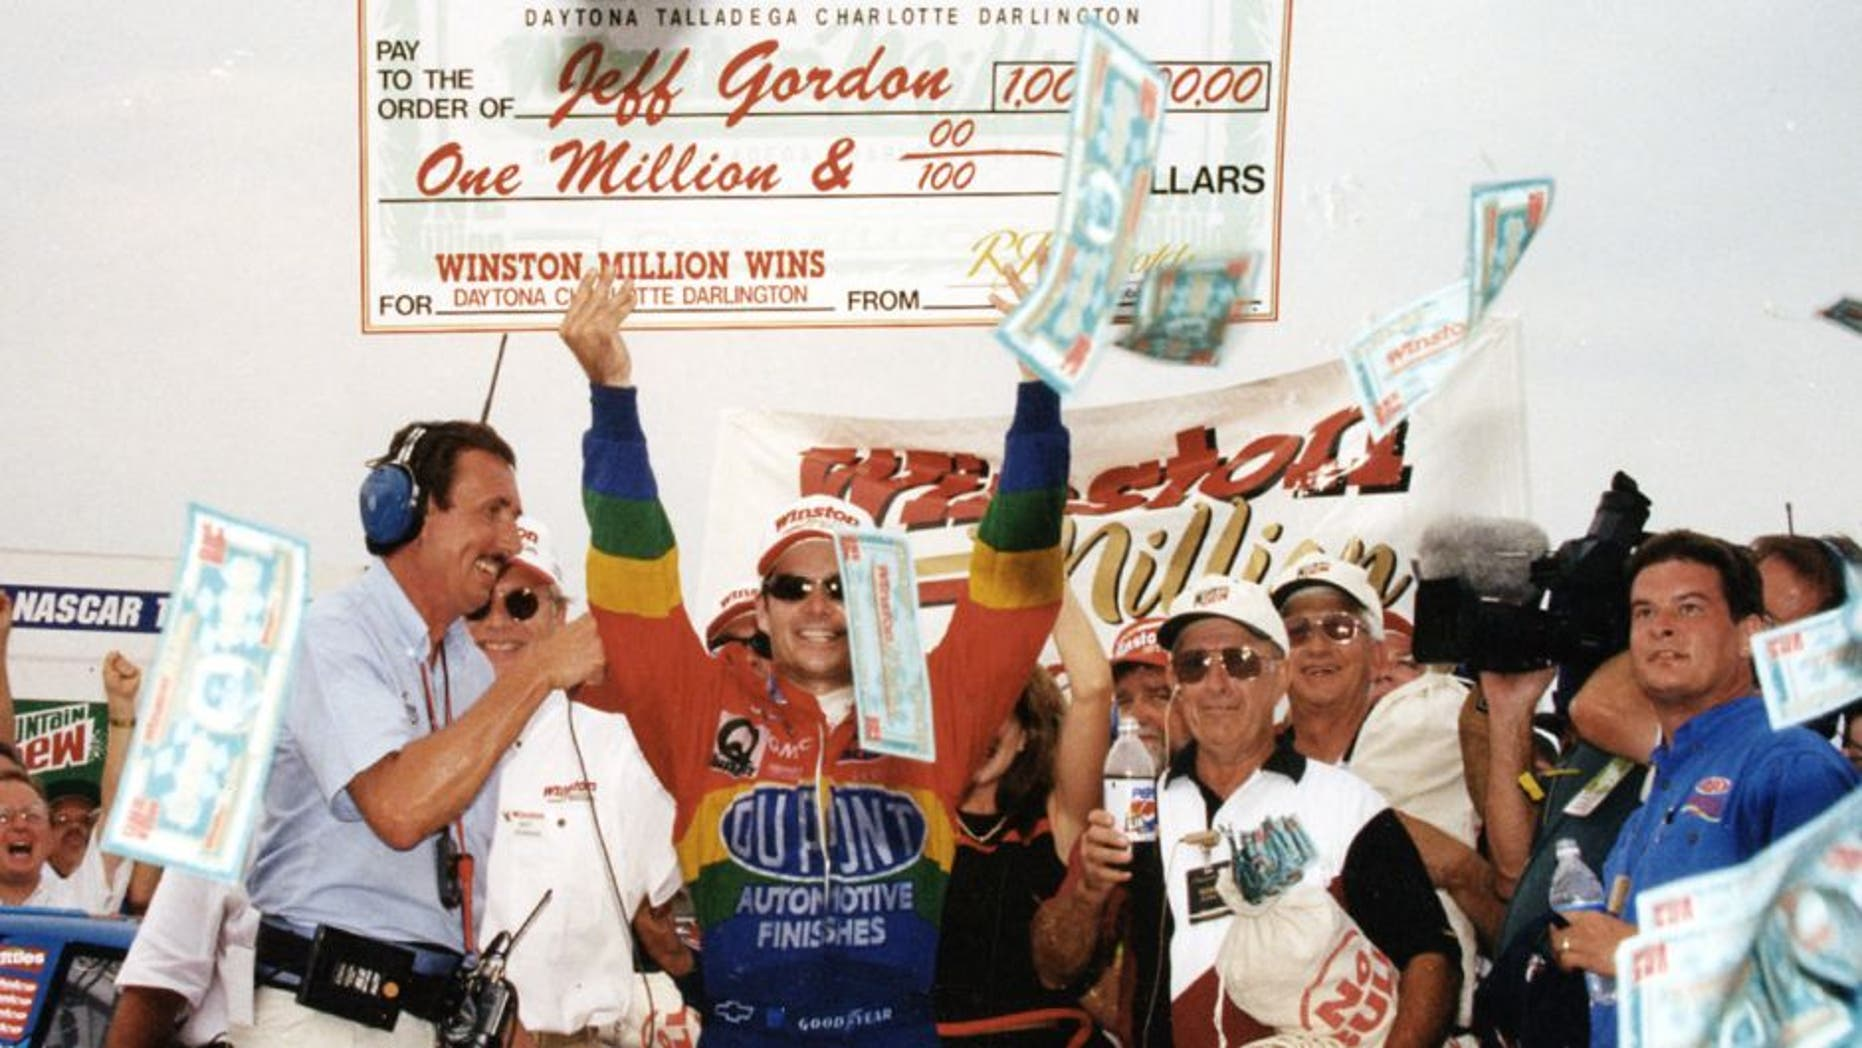 DARLINGTON, SC - AUGUST 31, 1997: Jeff Gordon wins the Winston Million for wins at Daytona, Charlotte, and Darlington in the NASCAR Cup Series. (Photo by ISC Archives via Getty Images)